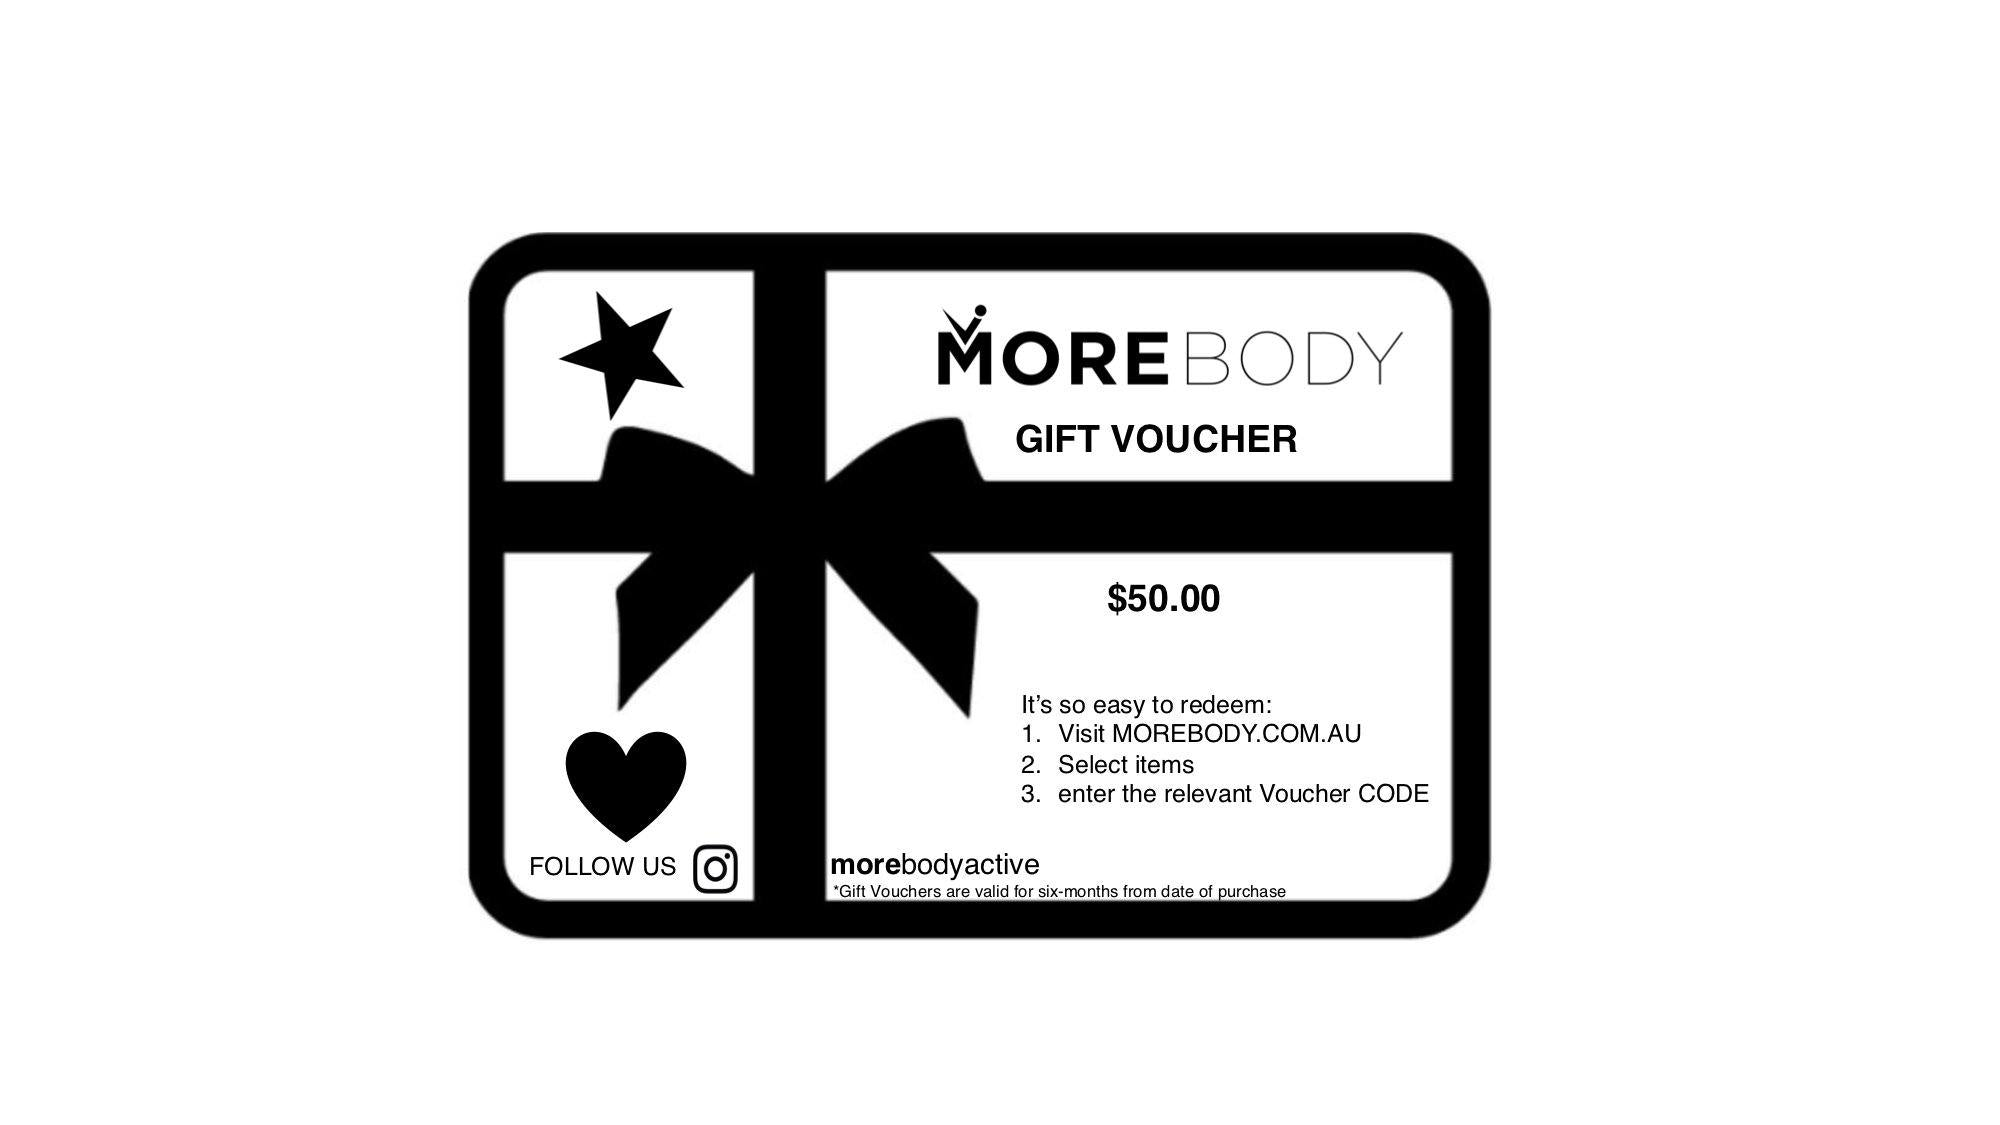 Gift Voucher $50.00 - More Body